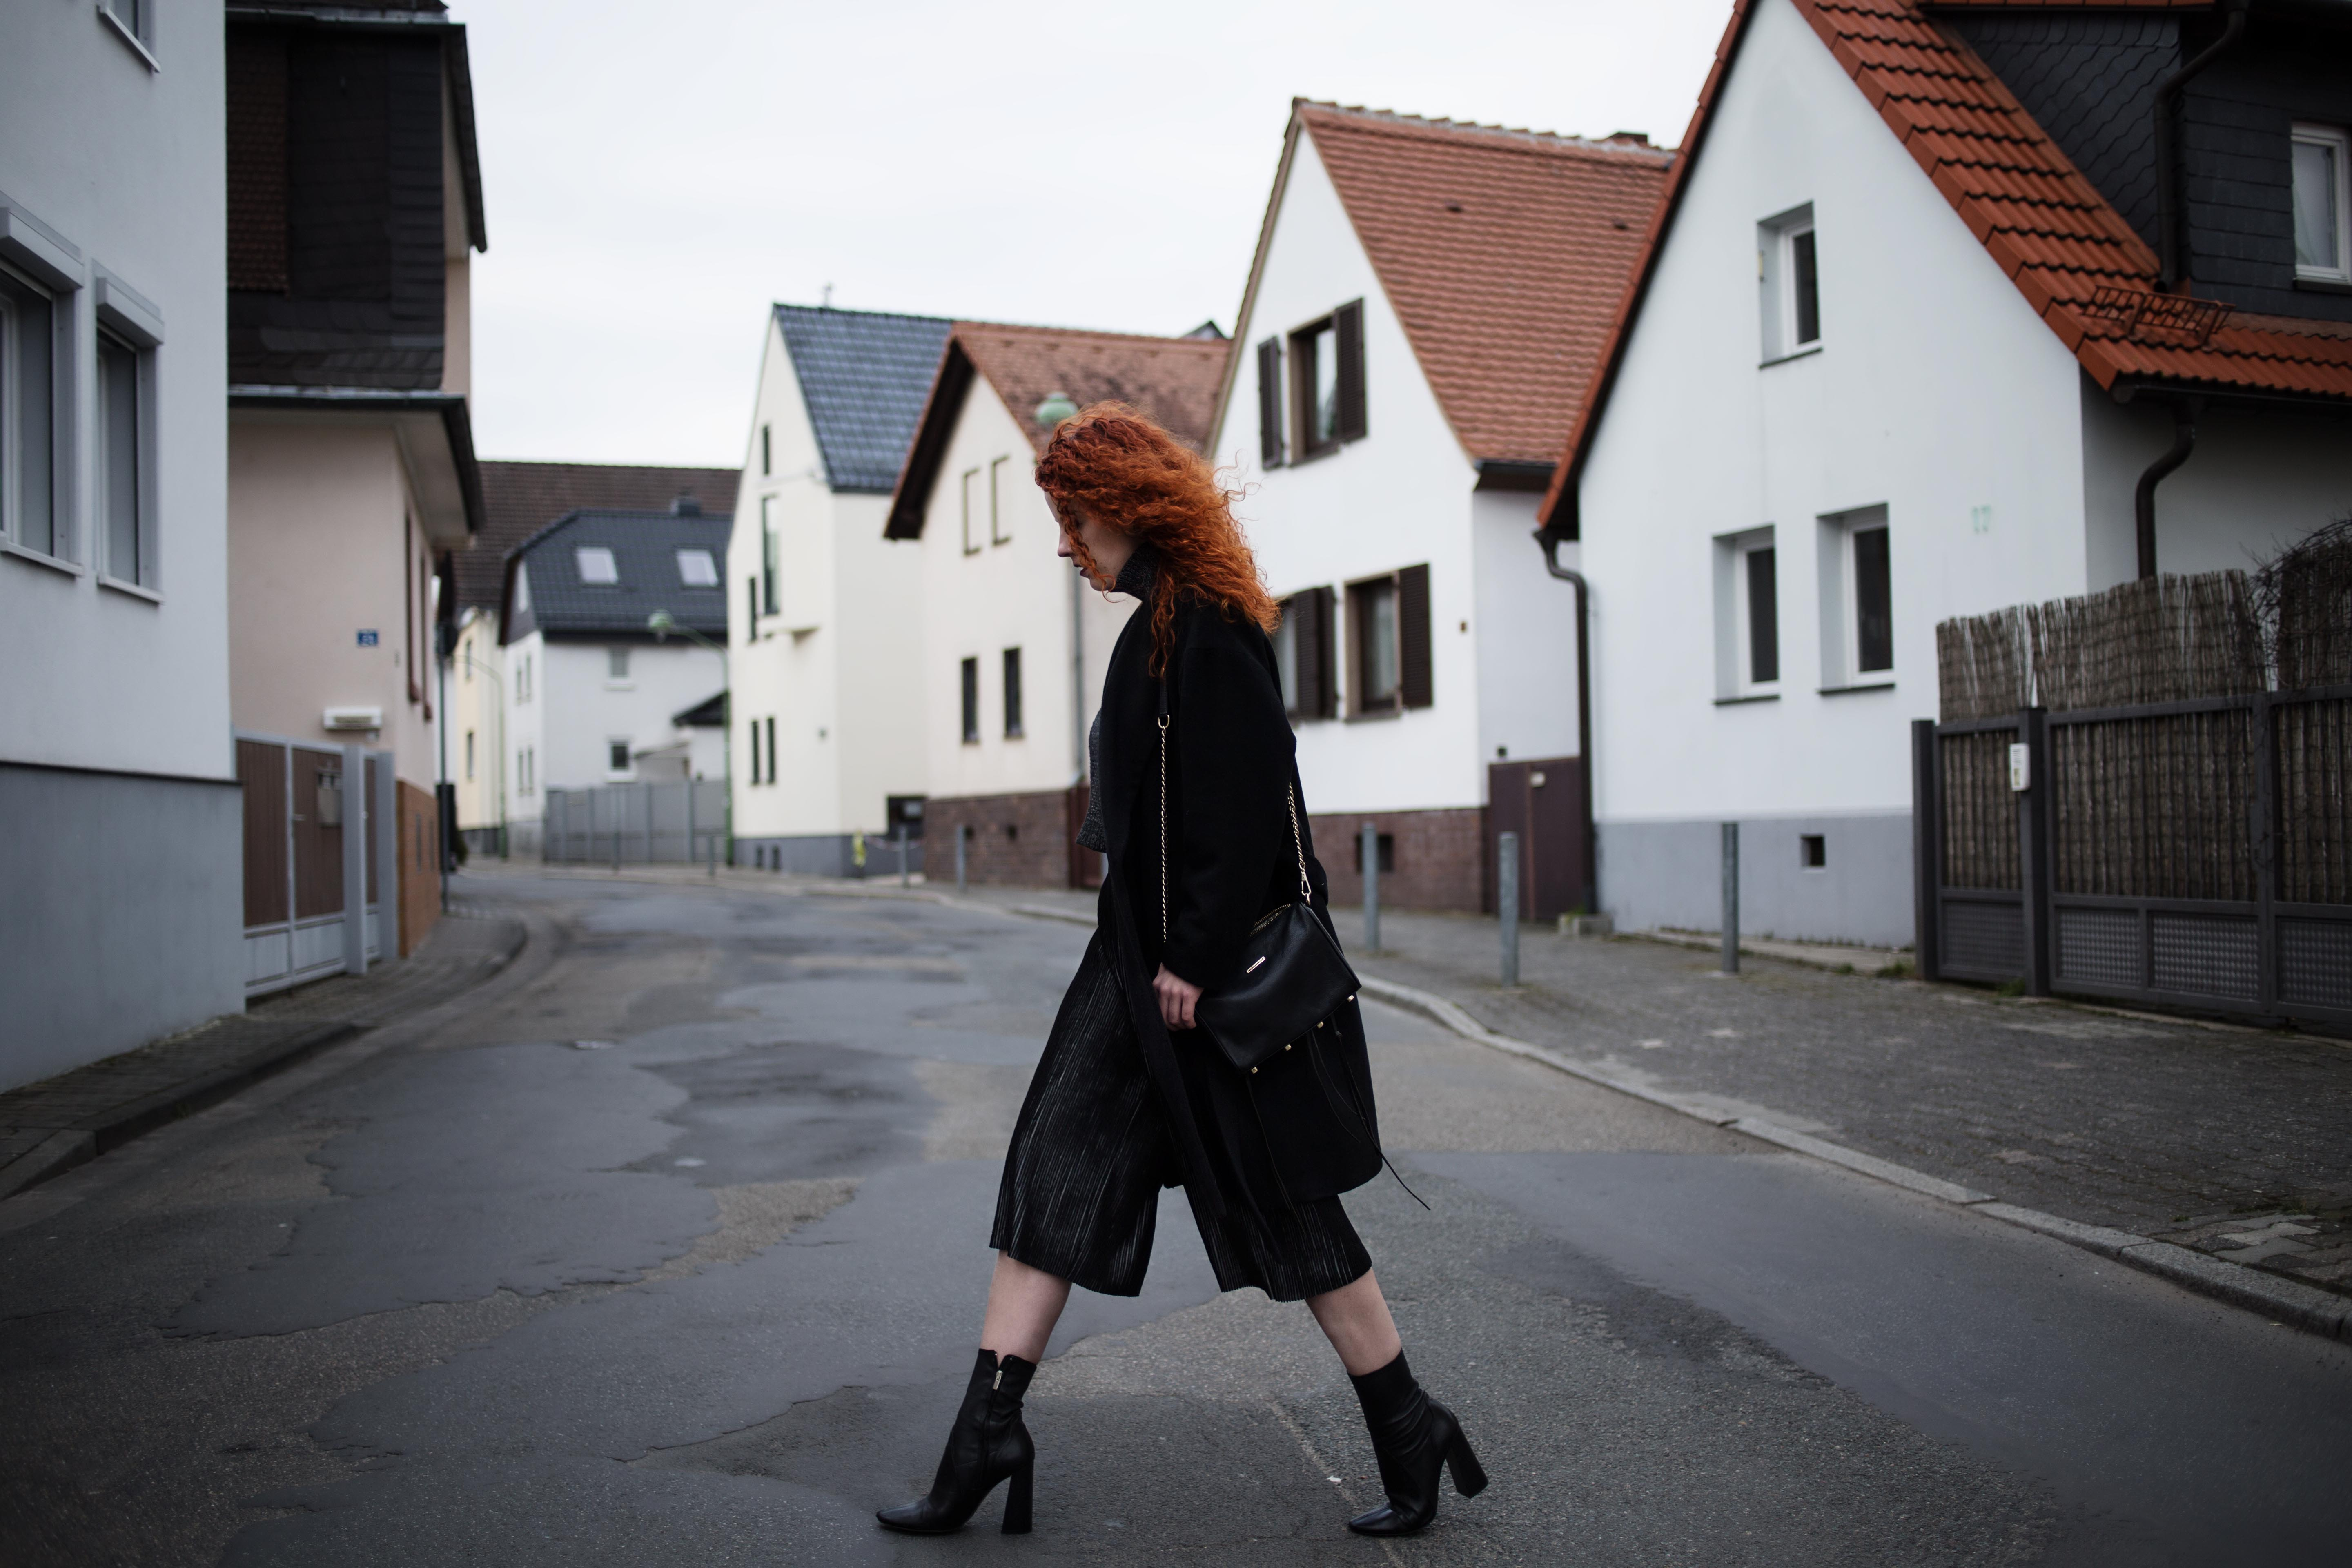 culottes & boots outfit fashion blogger frankfurt ffm mode ootd 5preview pants culottes coat zara boots rebecca minkoff bag edgy streetstyle